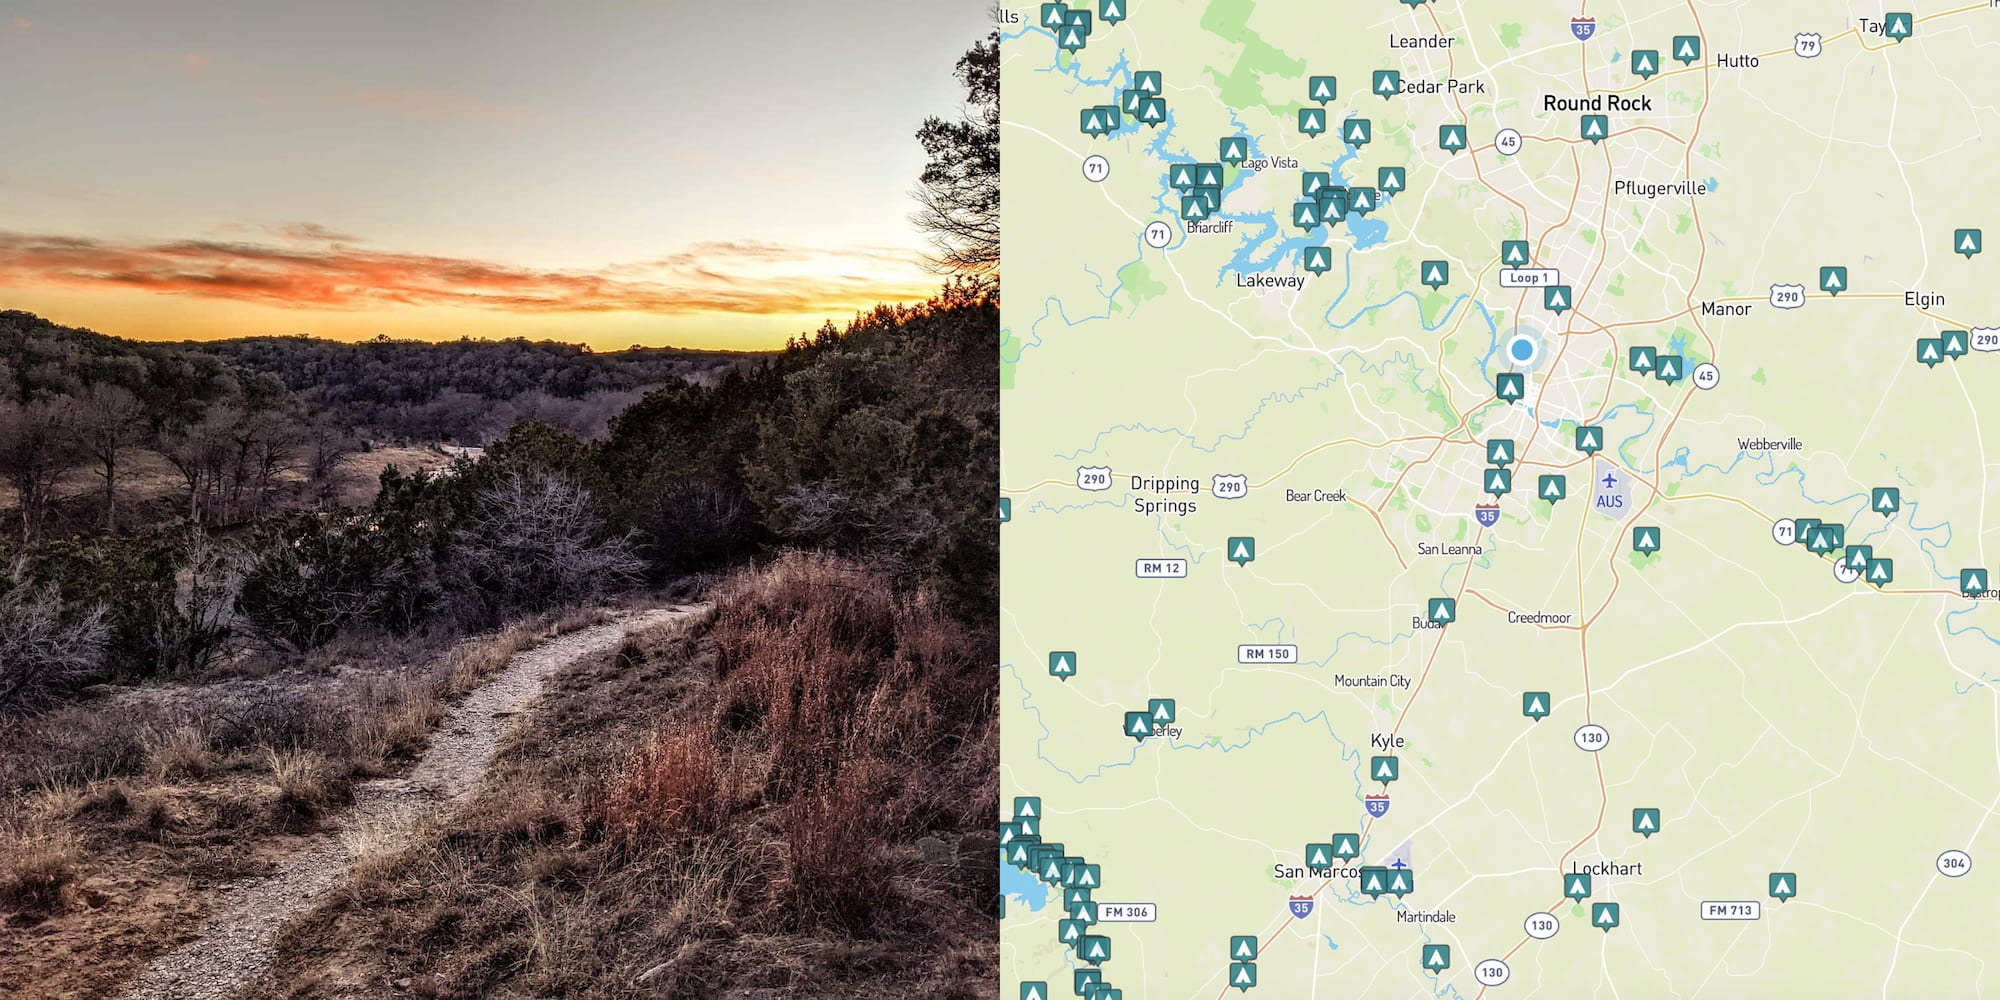 Image fromcampsite near texas and map of campgrounds around Austin, Texas.